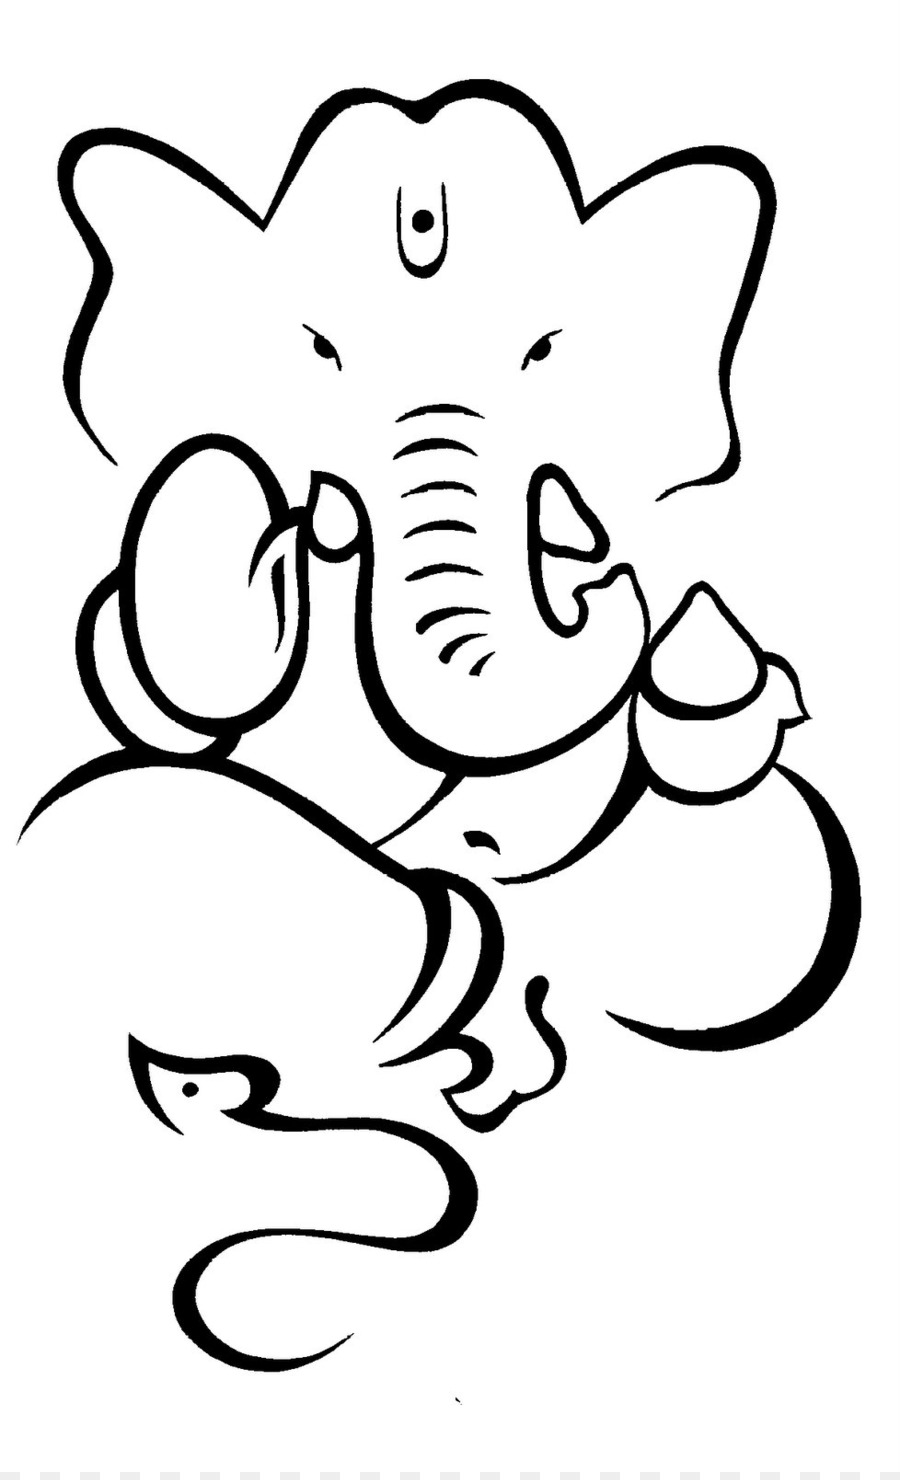 Photo To Line Art Software Free Download : Ganesha drawing hinduism deity sketch outline